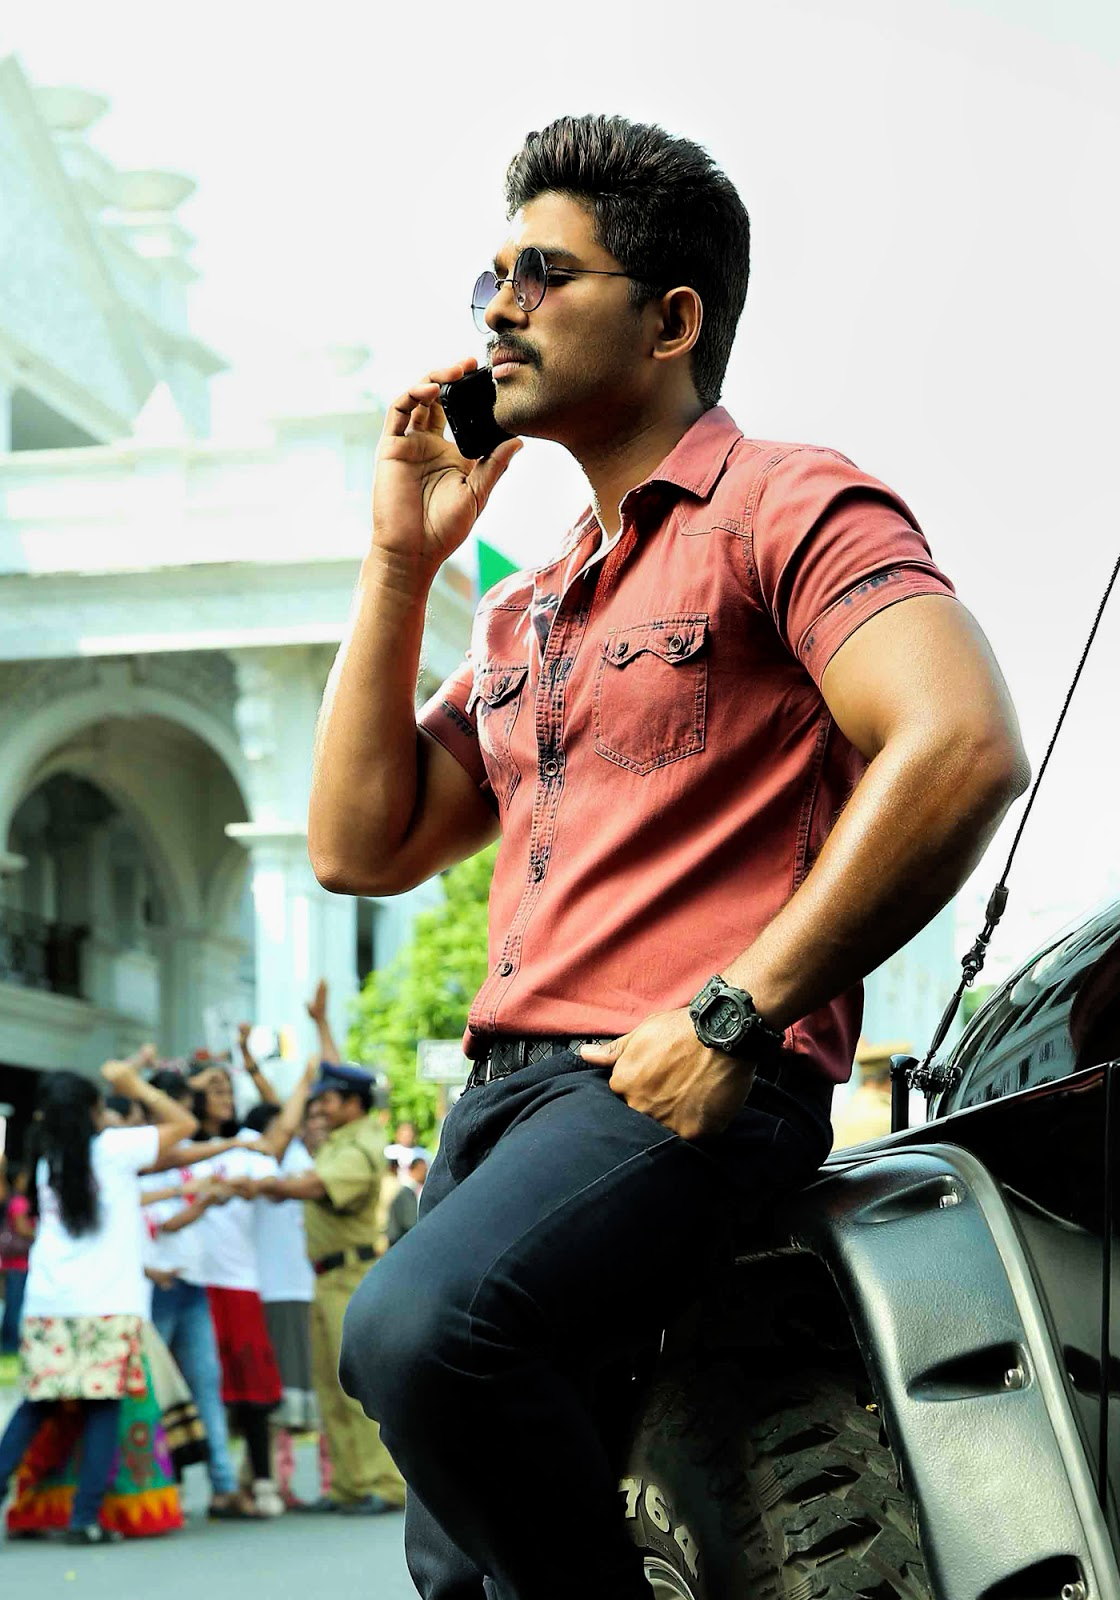 arjun photos hd wallpapers high definition free background